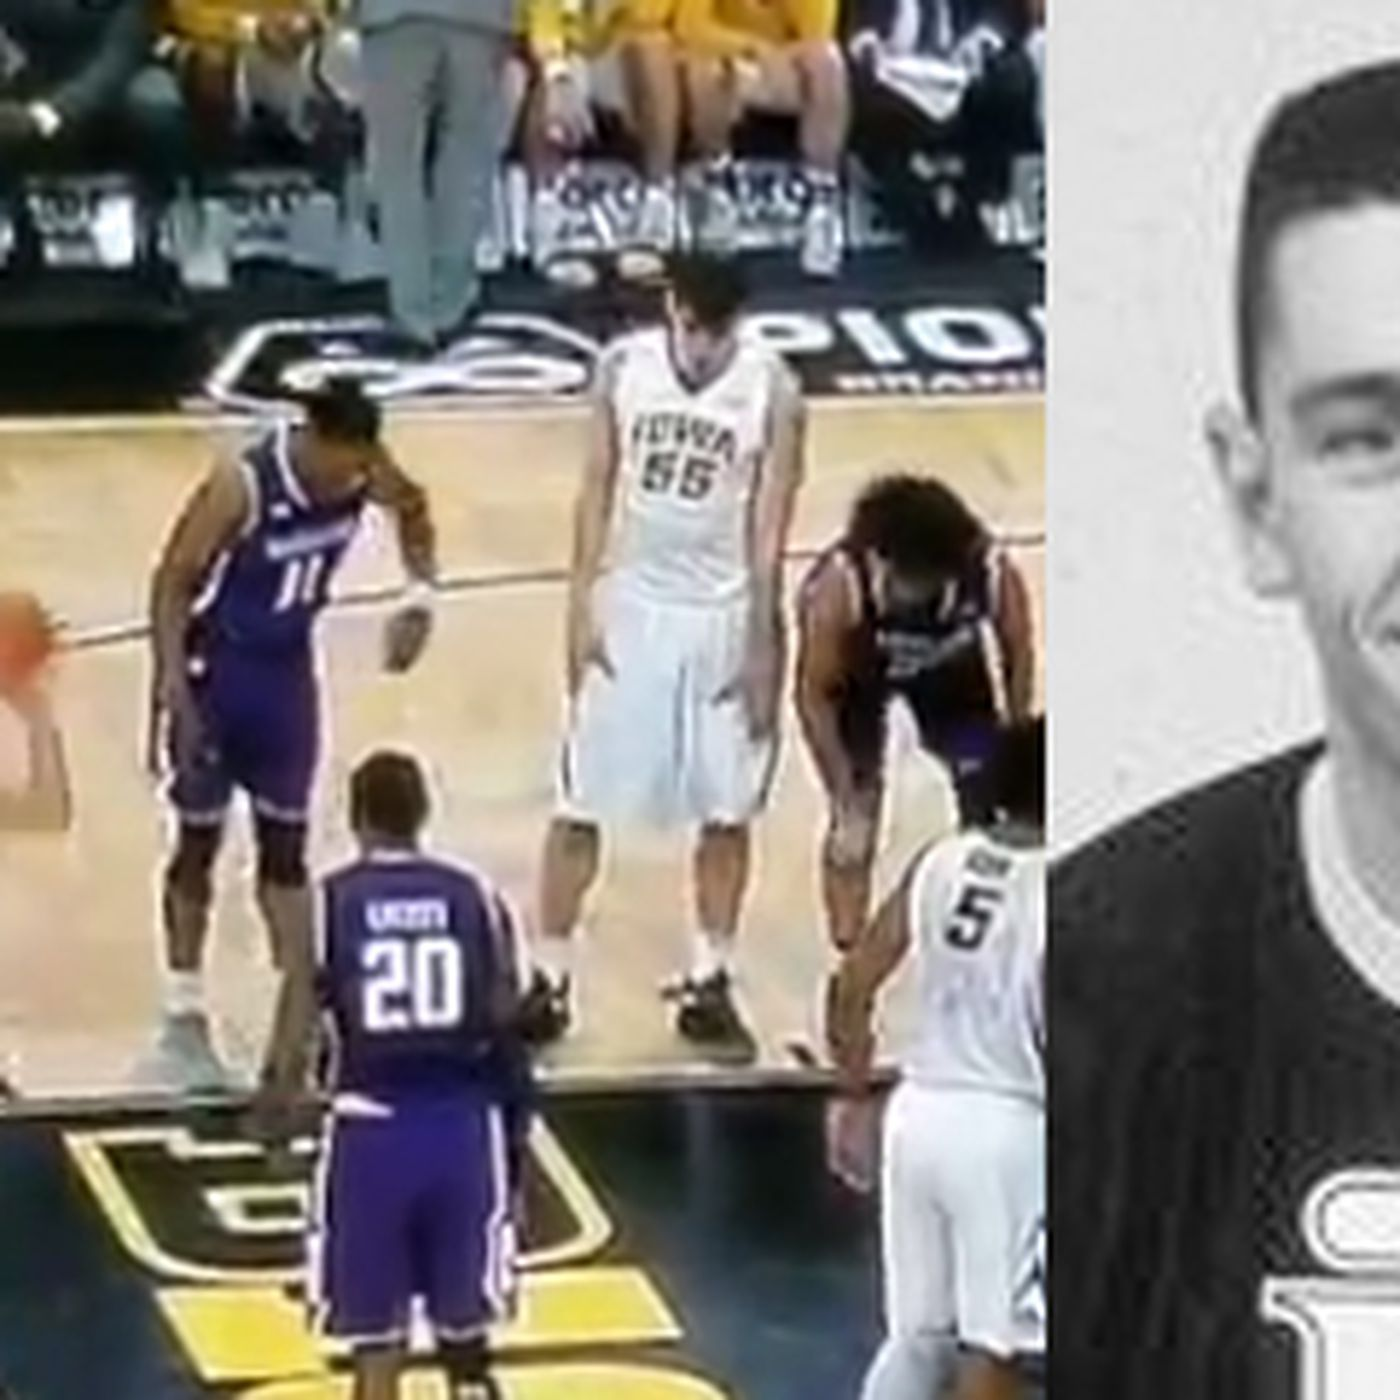 Iowa's point guard intentionally missed a free throw so he